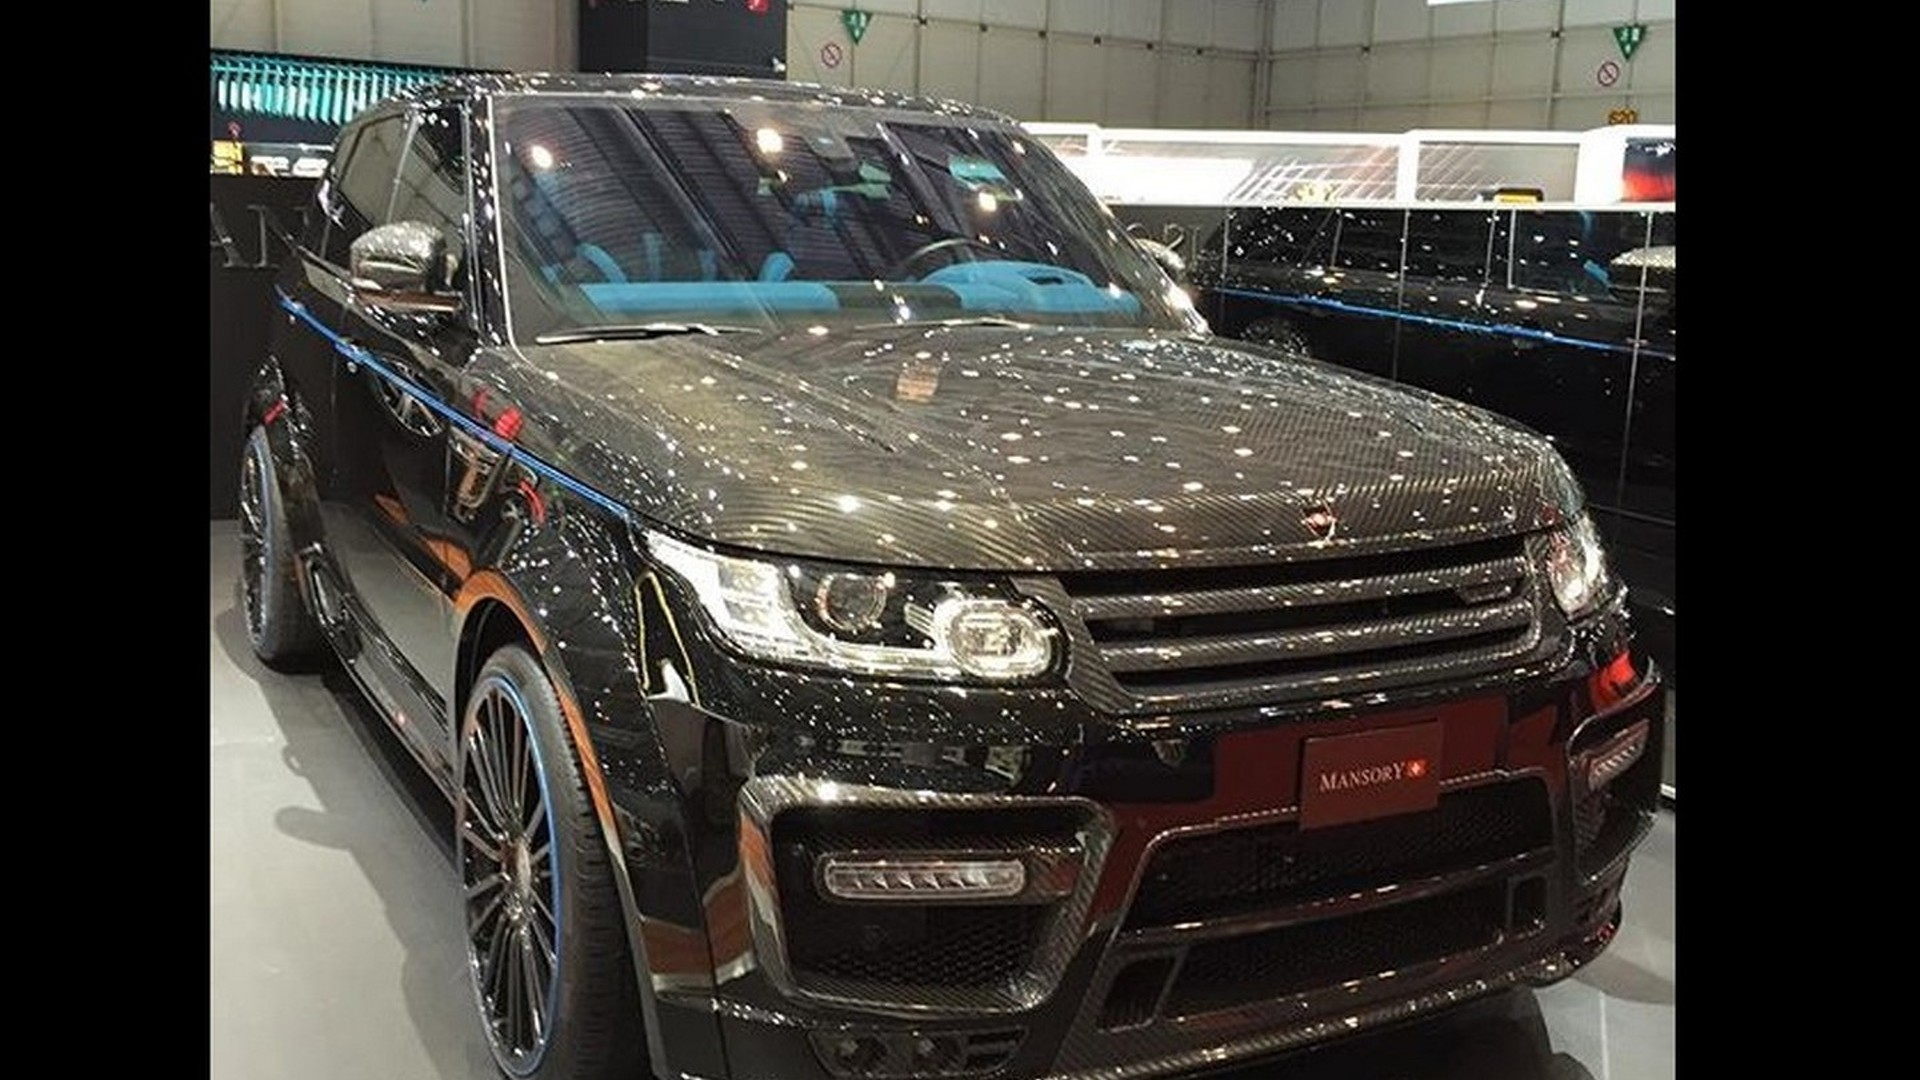 Range Rover Mansory >> Carbon Clad Mansory Range Rover Sport Elevated With 23 Inch Wheels